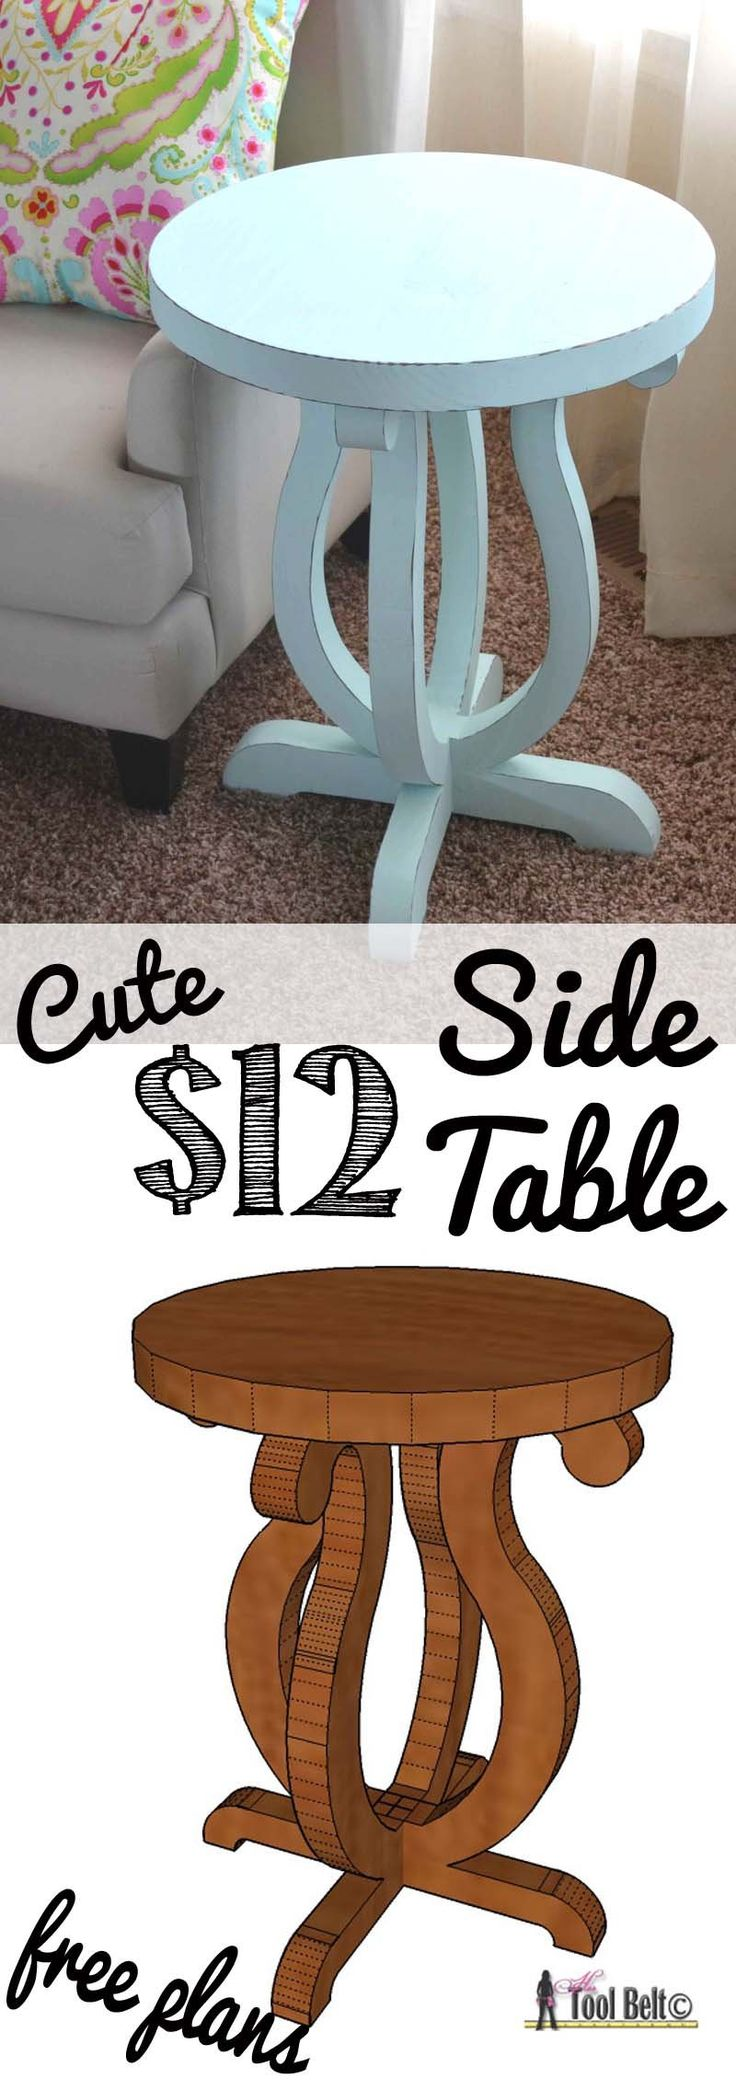 Build a cute side table from a simple 2 x 10 board.  Free plans and pattern on hertoolbelt.com